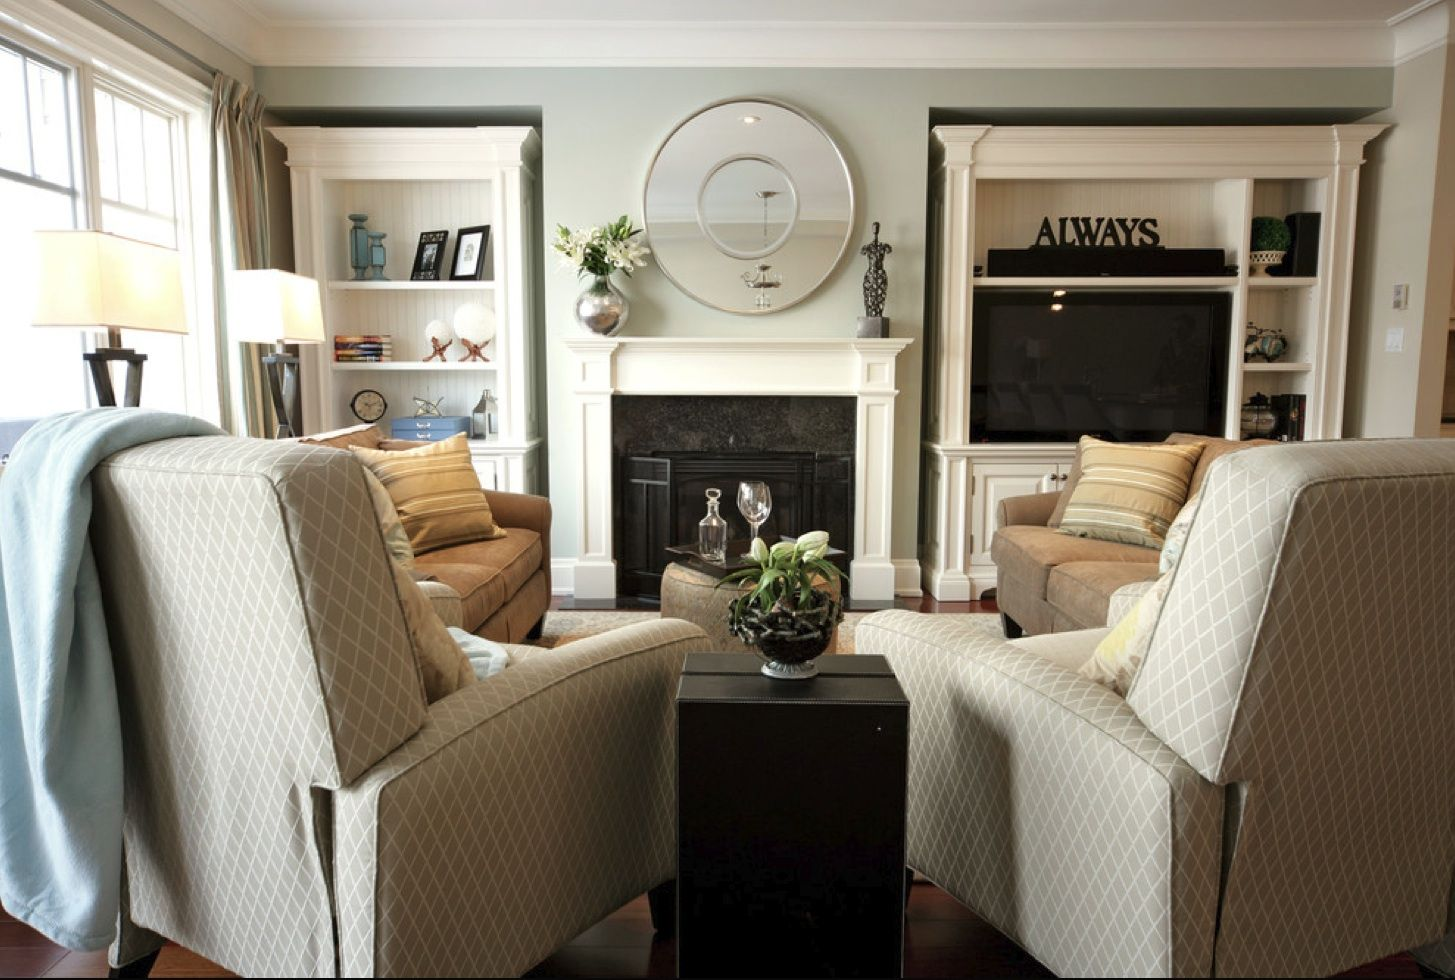 Seating Ideas For A Small Living Room: Living Room With Two Recliners & Two Couches